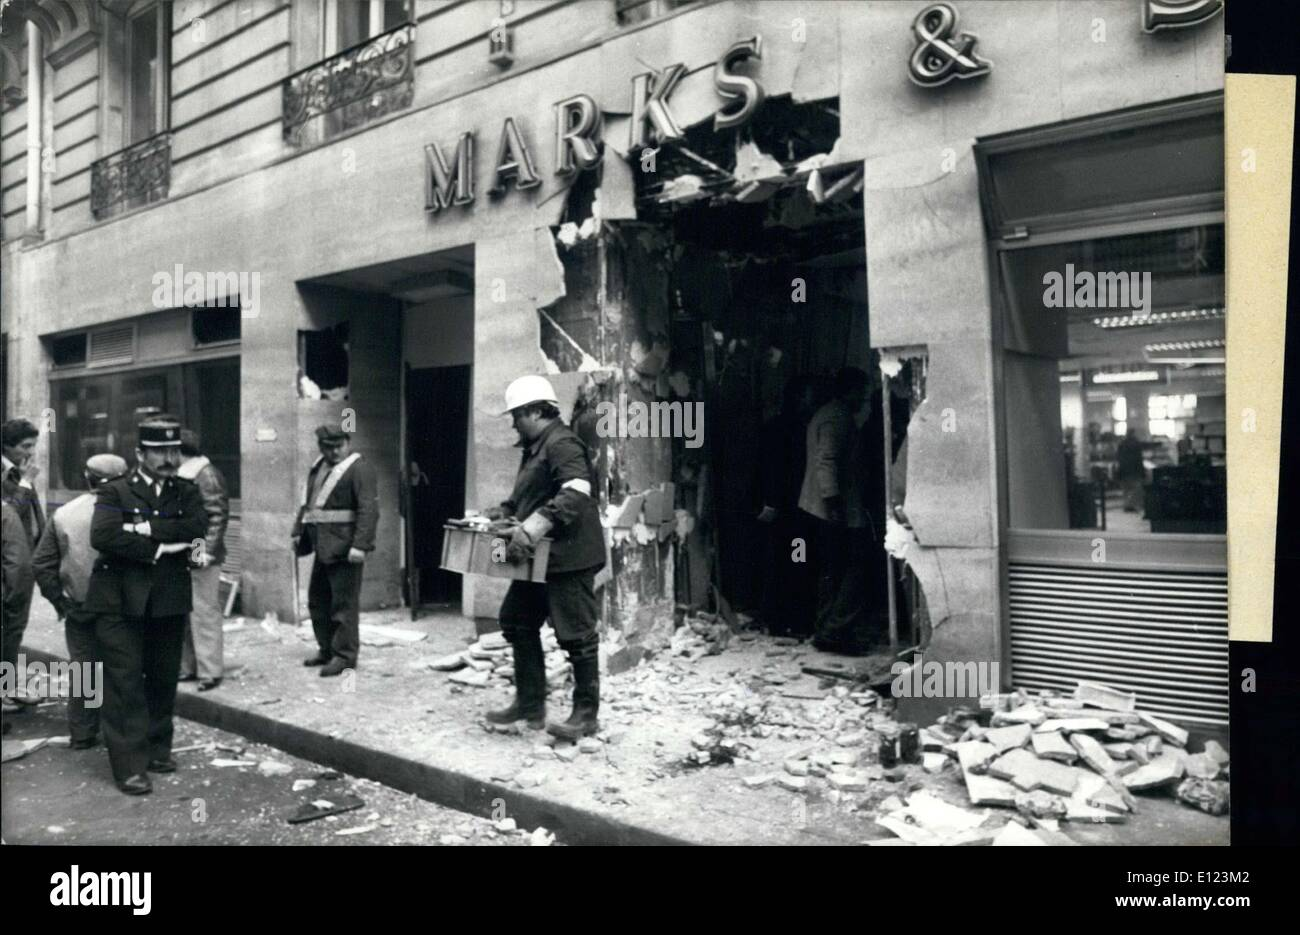 Feb. 25, 1985 - Cleanup at Marks & Spencer store in Paris that was bombed - Stock Image